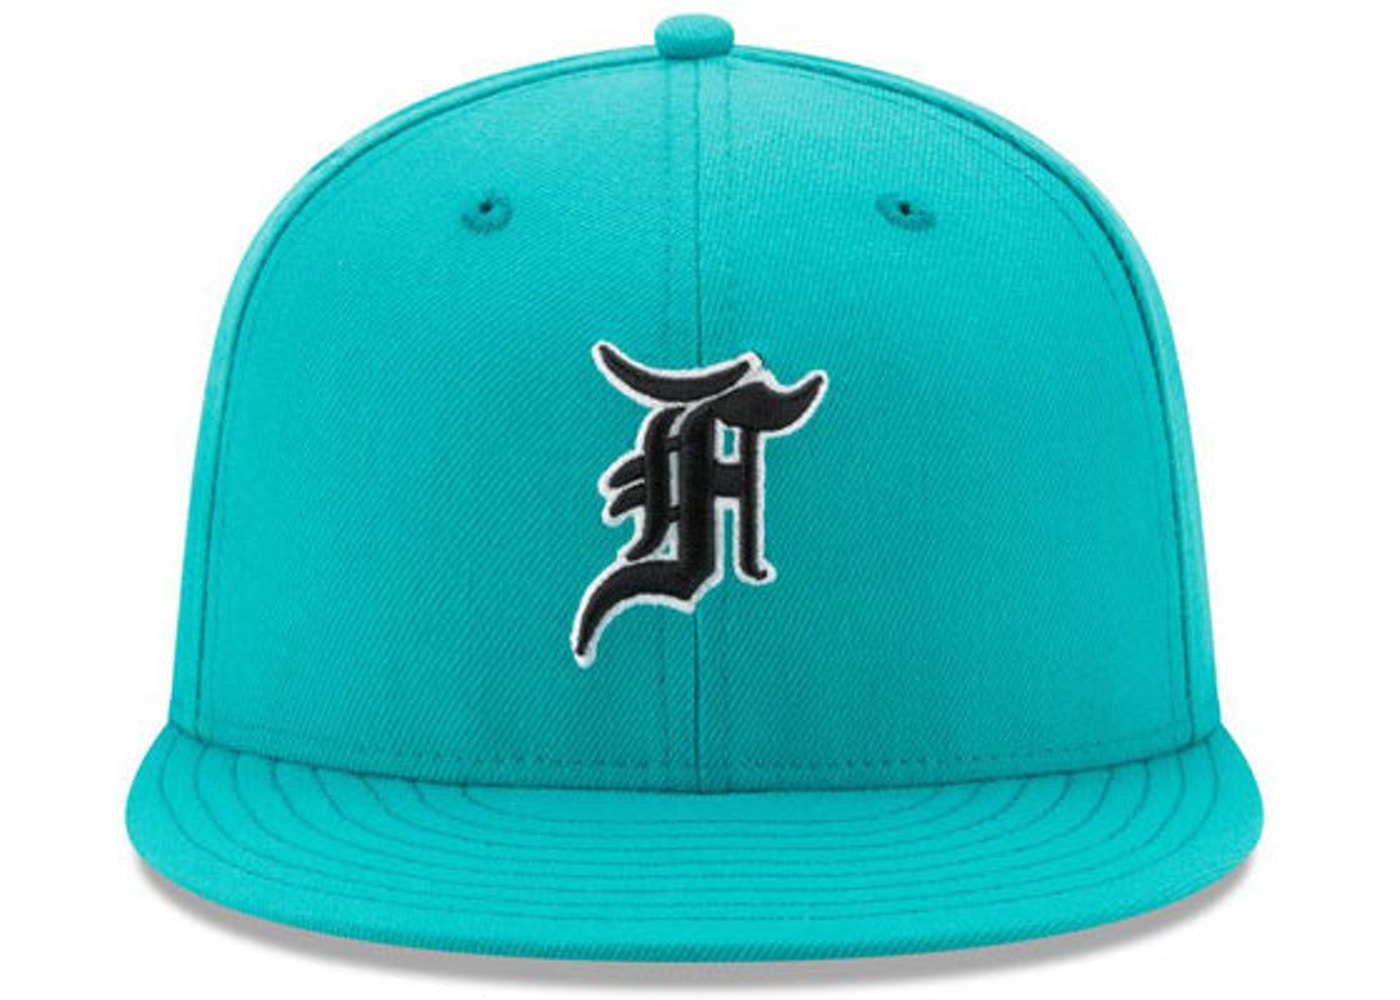 FEAR OF GOD All Star New Era Fitted Cap Hat Teal - Fifth Collection ec4a0735c9f